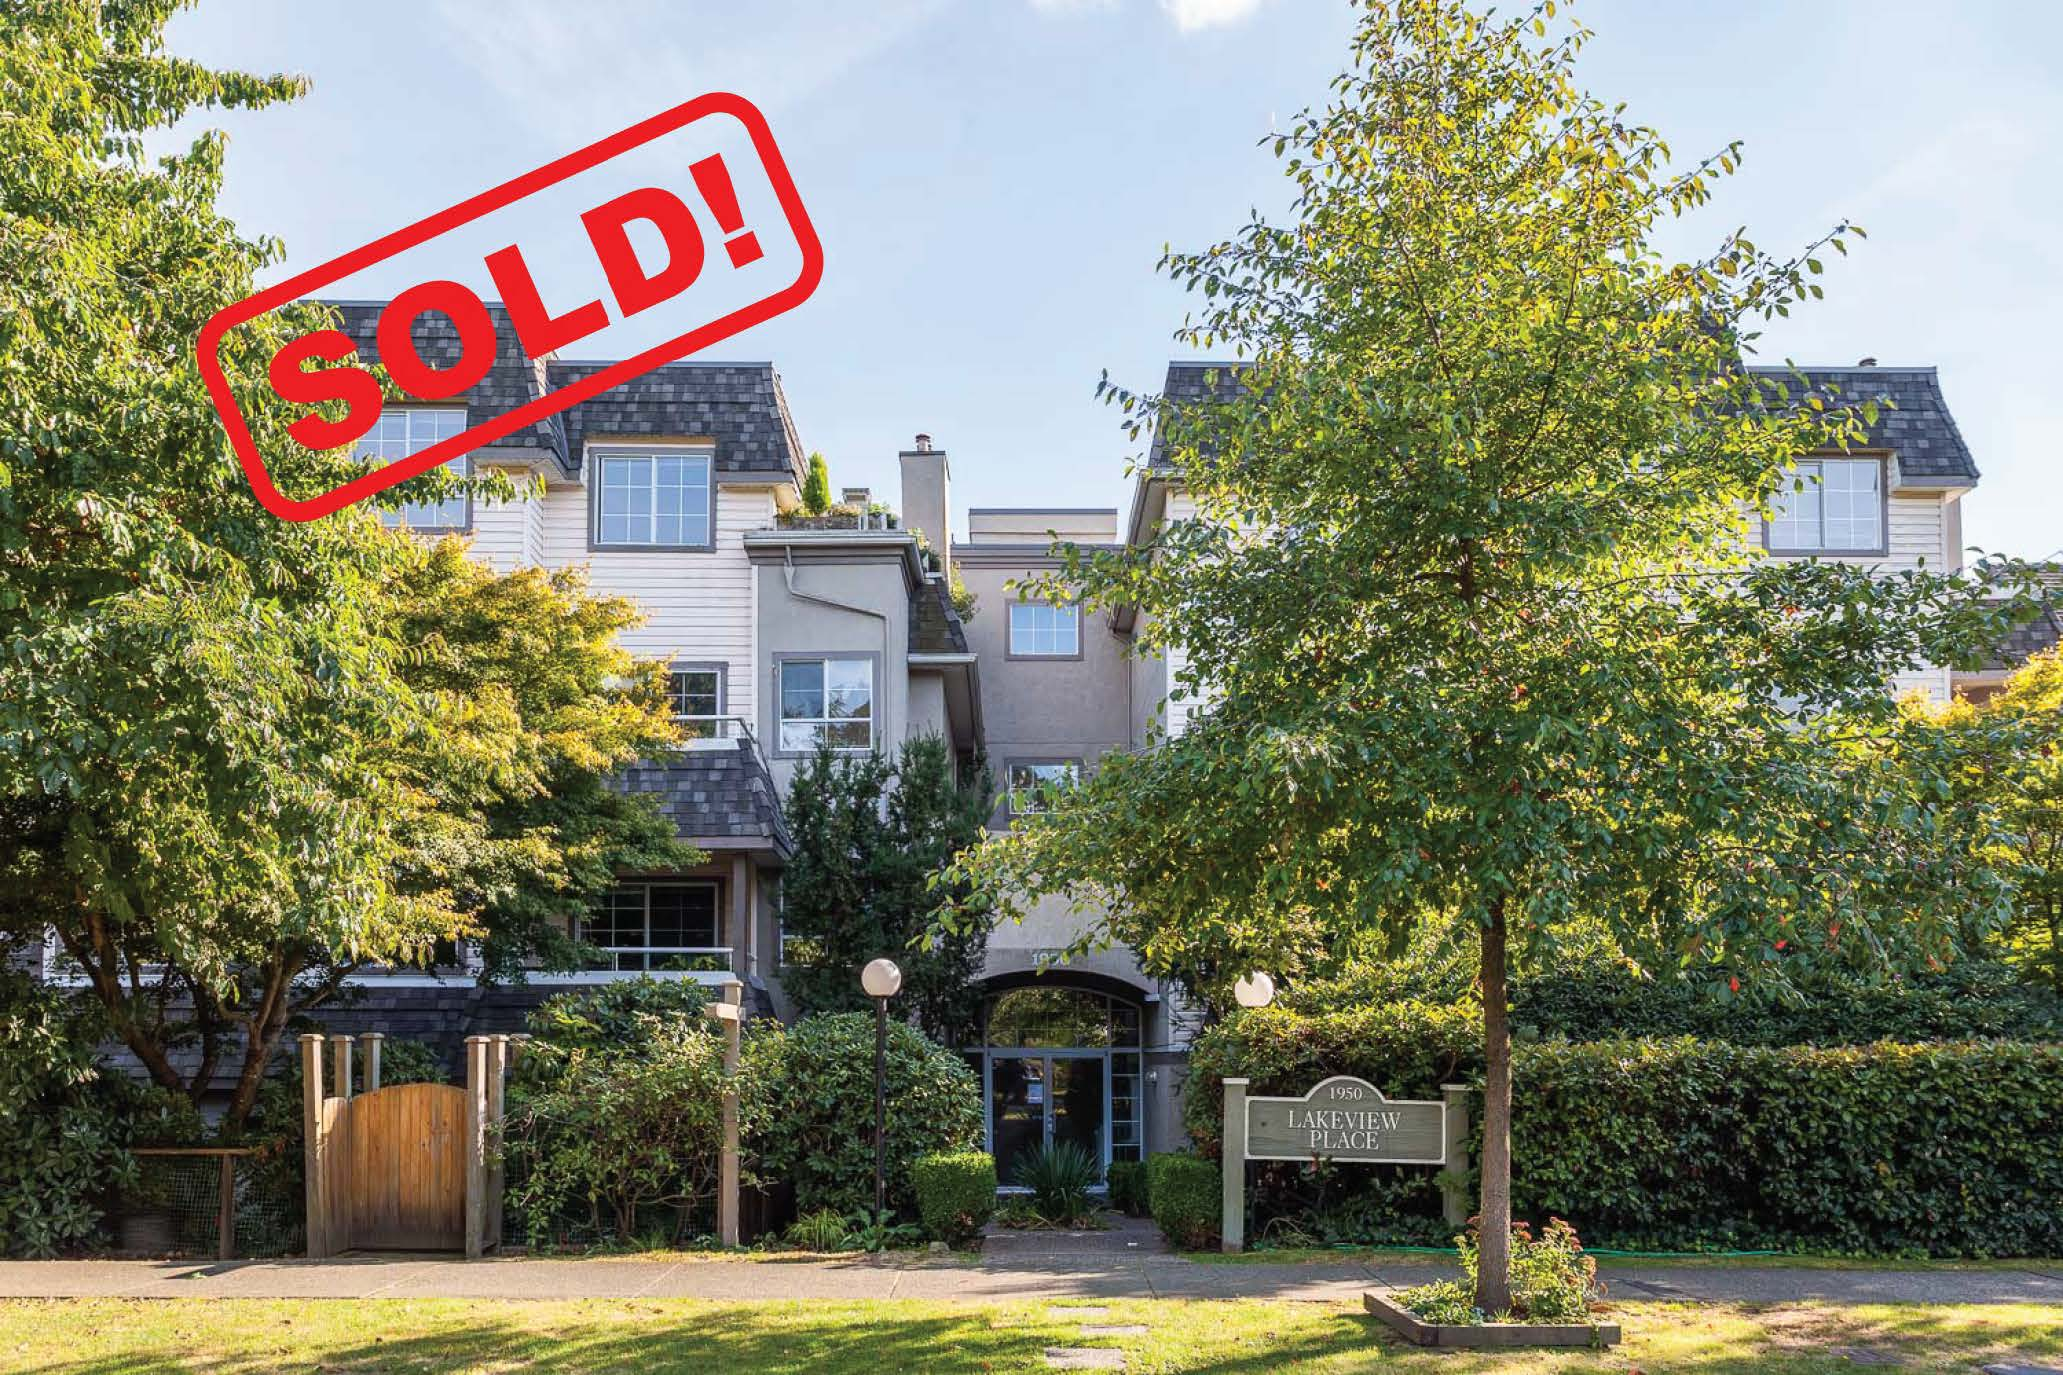 407-1950 11th AVENUE     SOLD FOR: $535,000  1 BED | 1 BATH | 771 SF